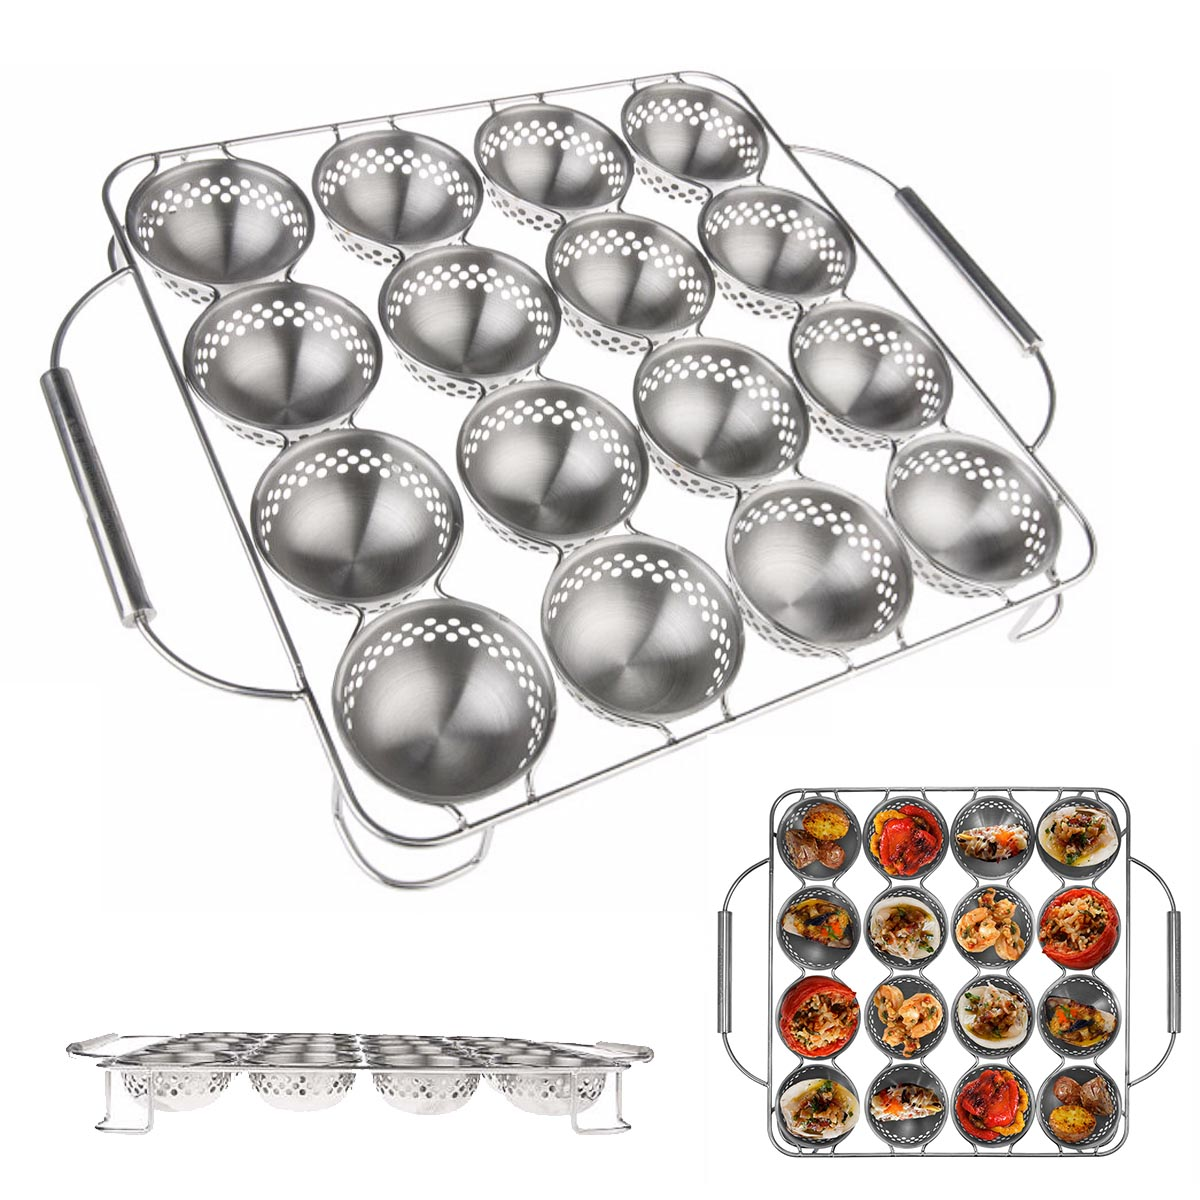 Stainless Steel BBQ Appetizer Pan 16 Cavity Grilling Cooking Serve Tray Barbecue